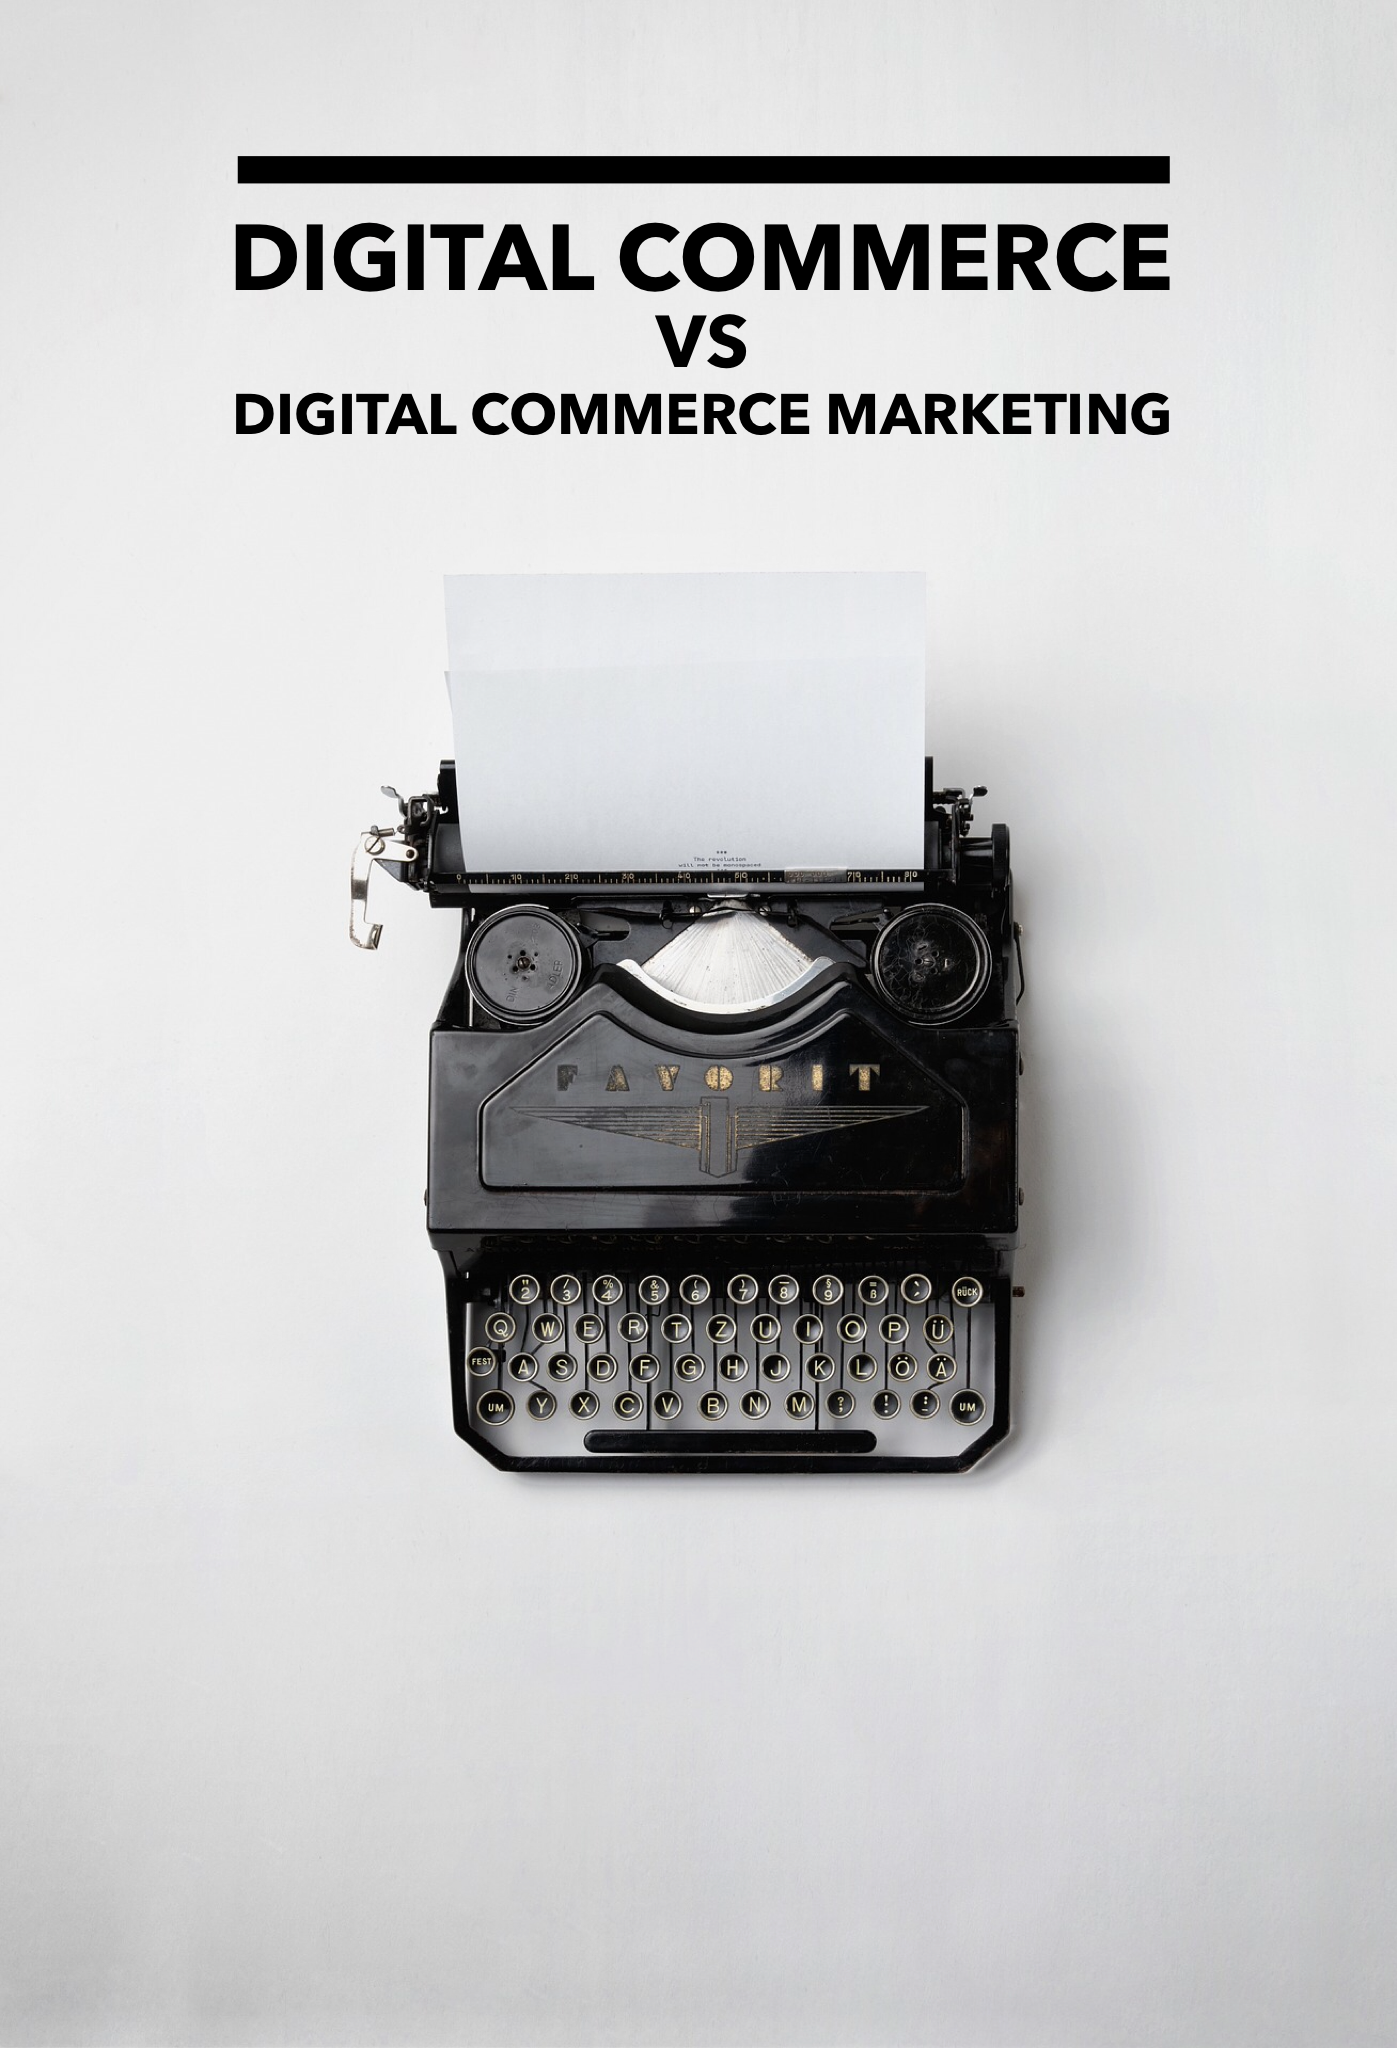 Digital Commerce vs Digital Commerce Marketing; What's in a Name?